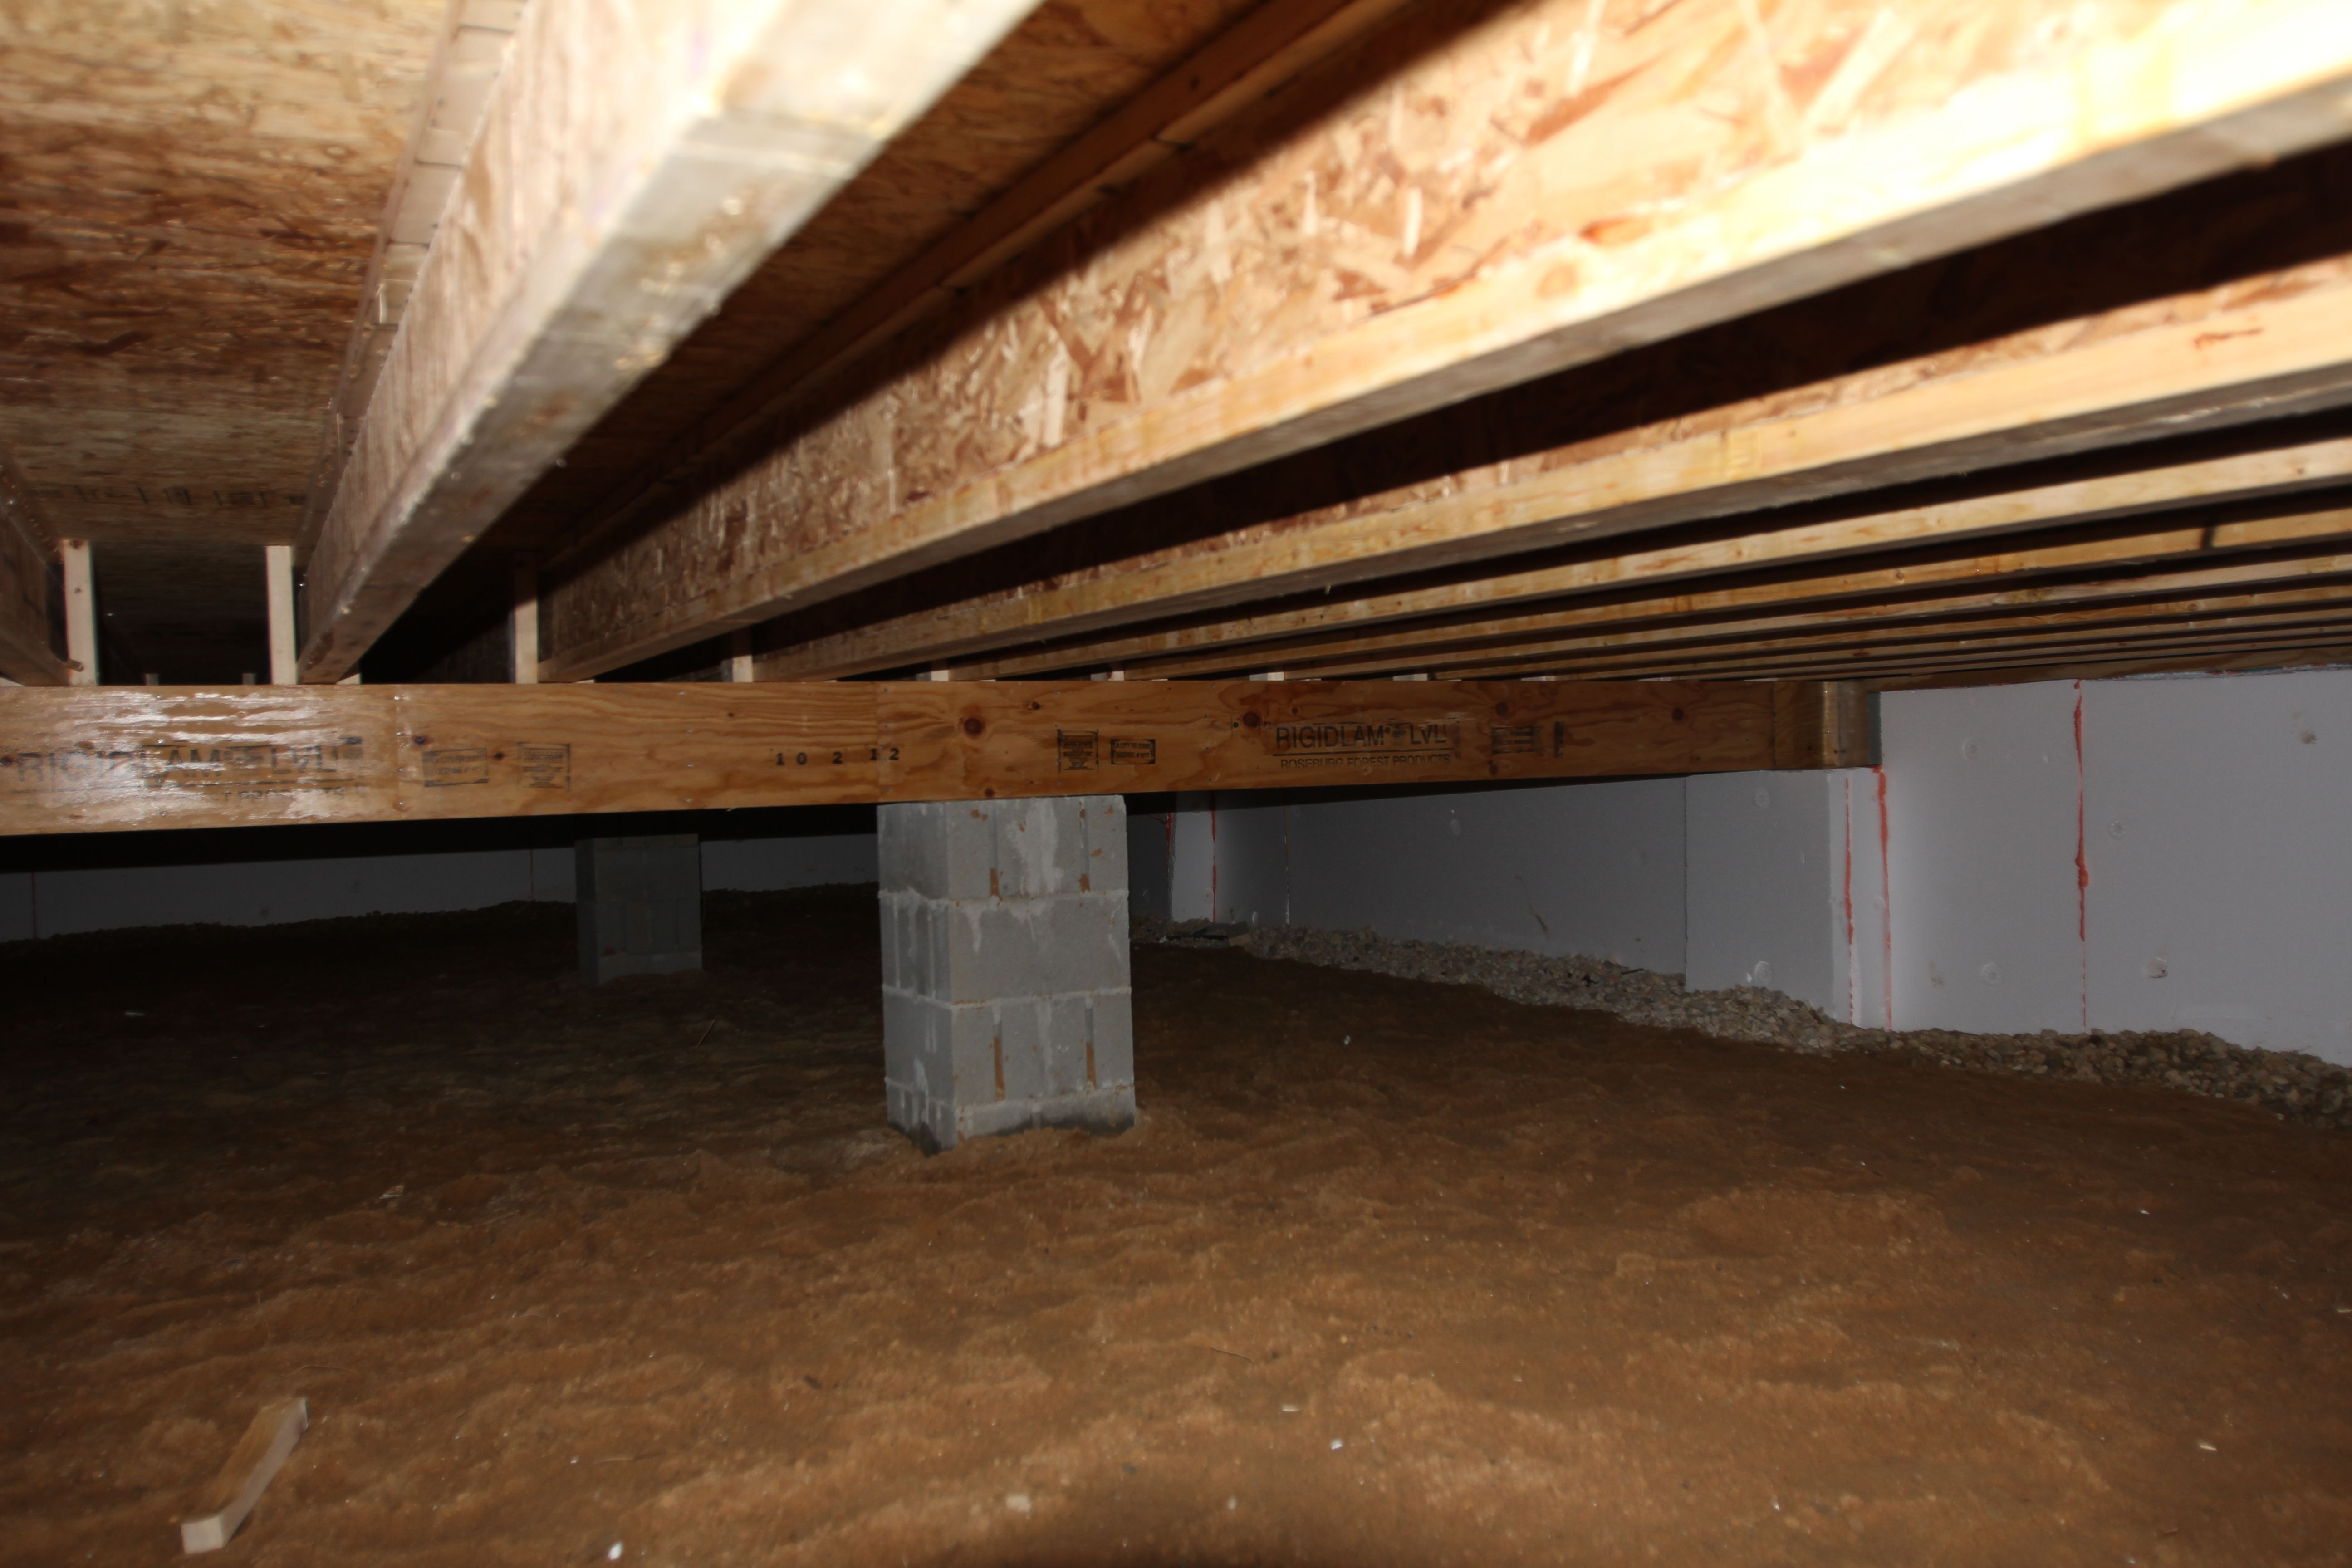 Floors Are Installed With Lvl Girders Engineered I Joists And Steel Shims Between The Pier Support Systems And Girders House Exterior Building Entryway Tables